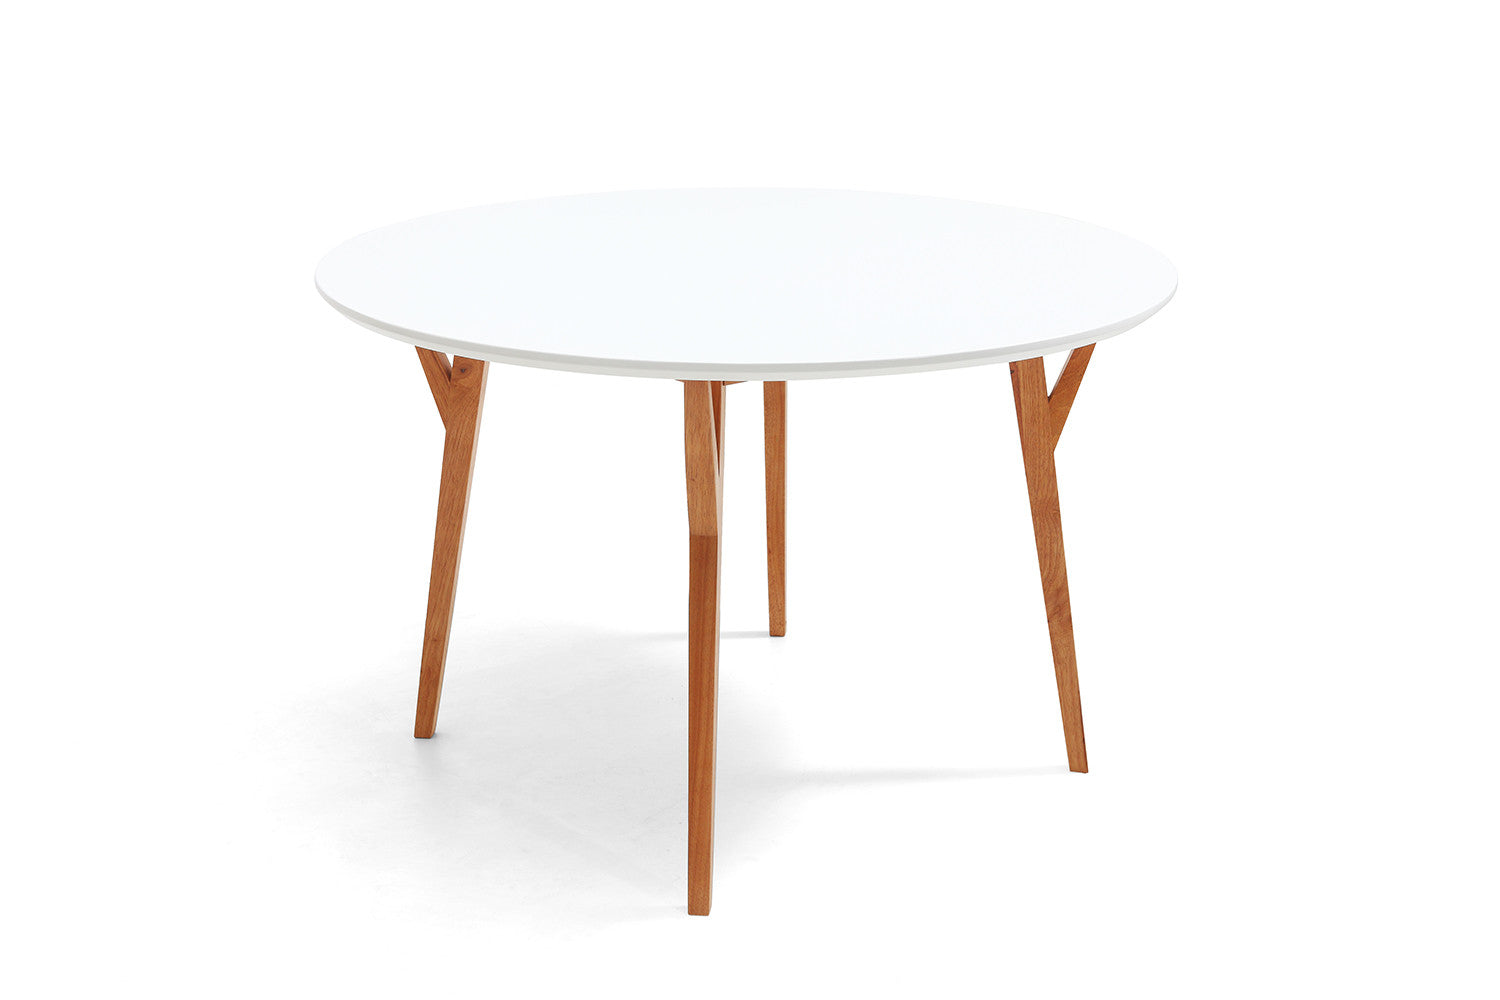 Table de salle manger ronde design scandinave moesa for Table a manger bois